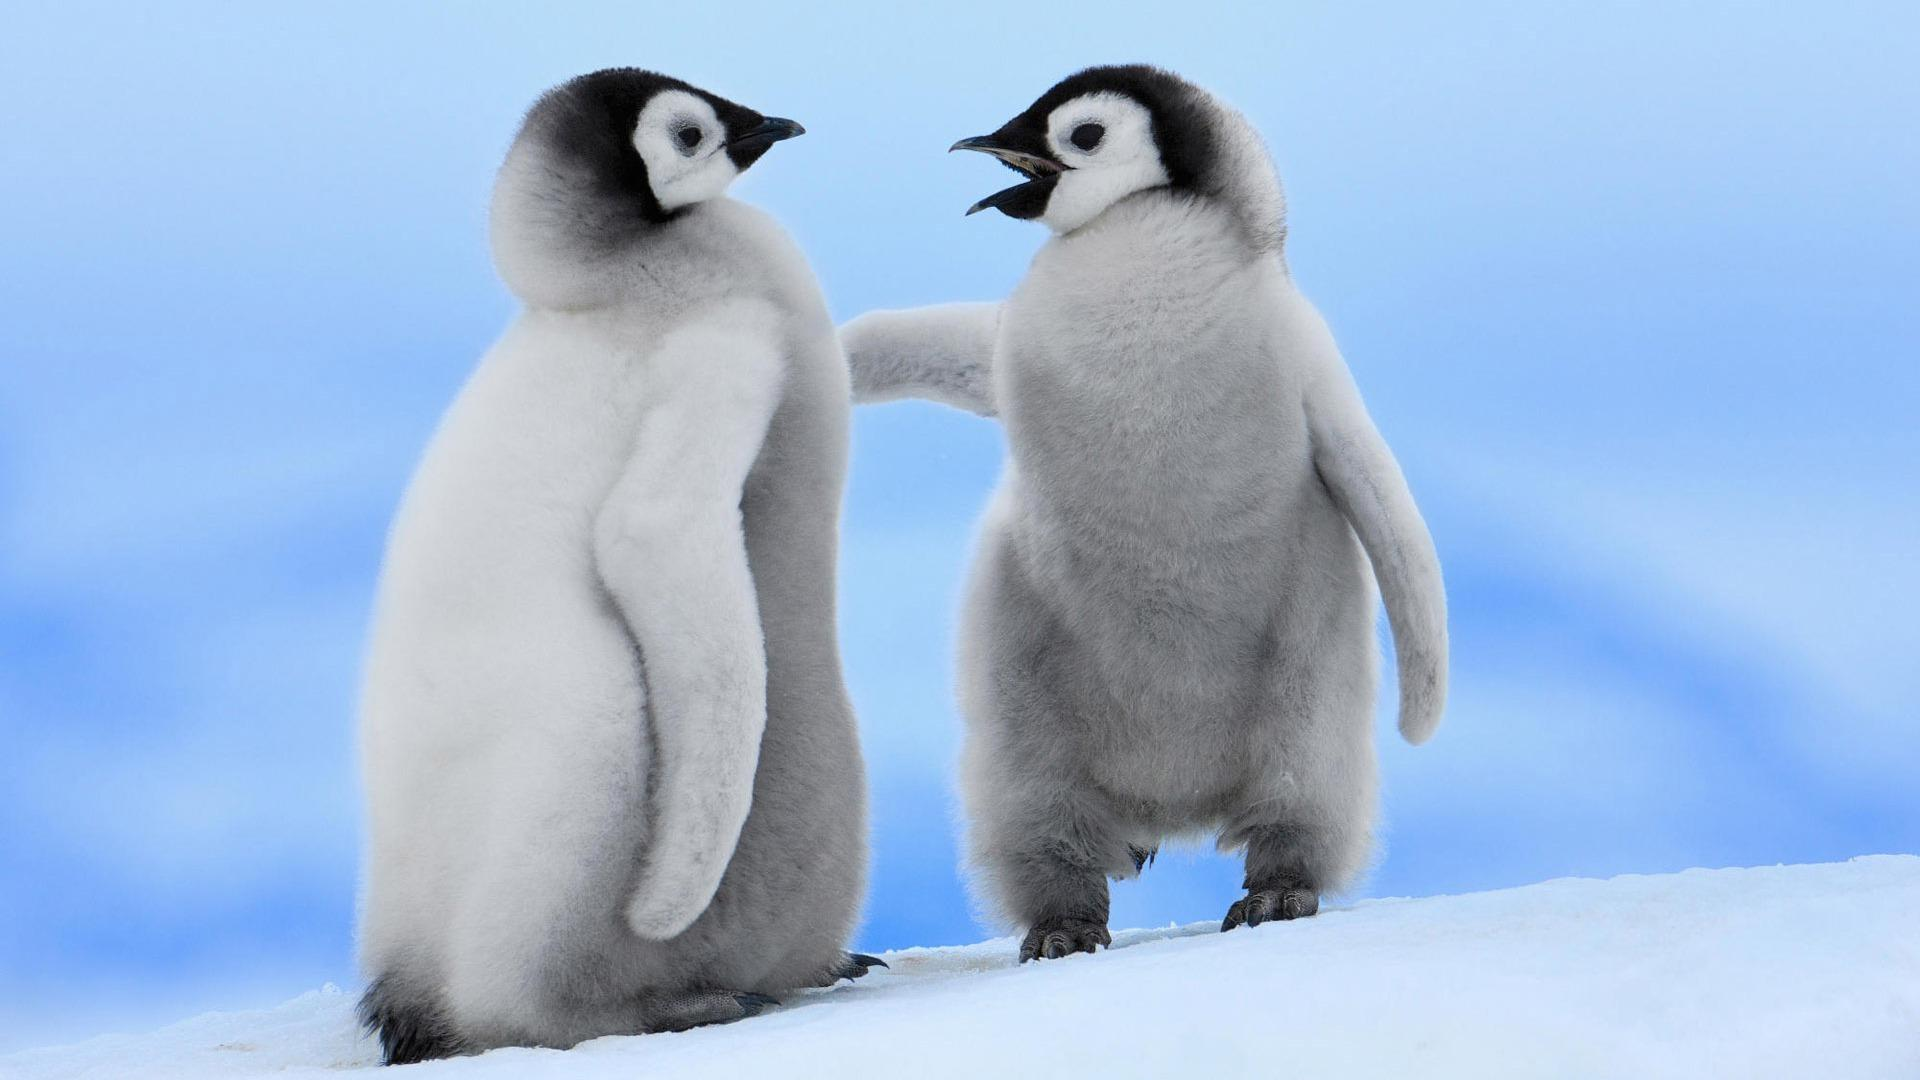 Penguin Wallpapers Best Wallpapers HD Wallpapers Download Free Images Wallpaper [1000image.com]